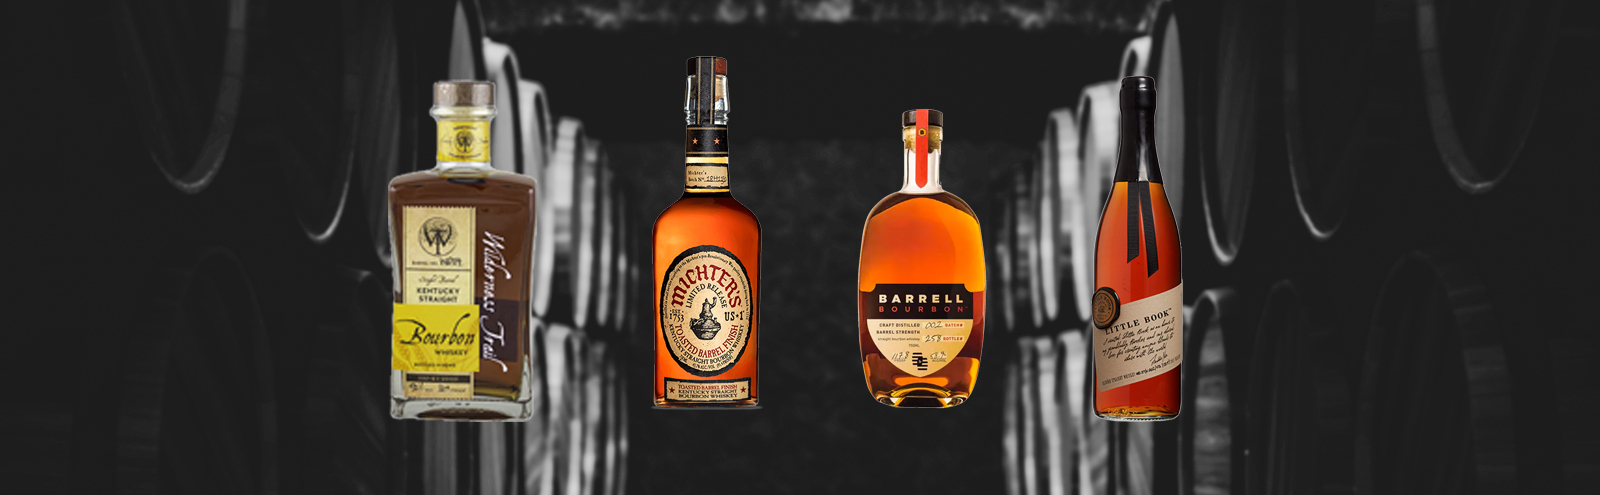 best new bourbons 2020